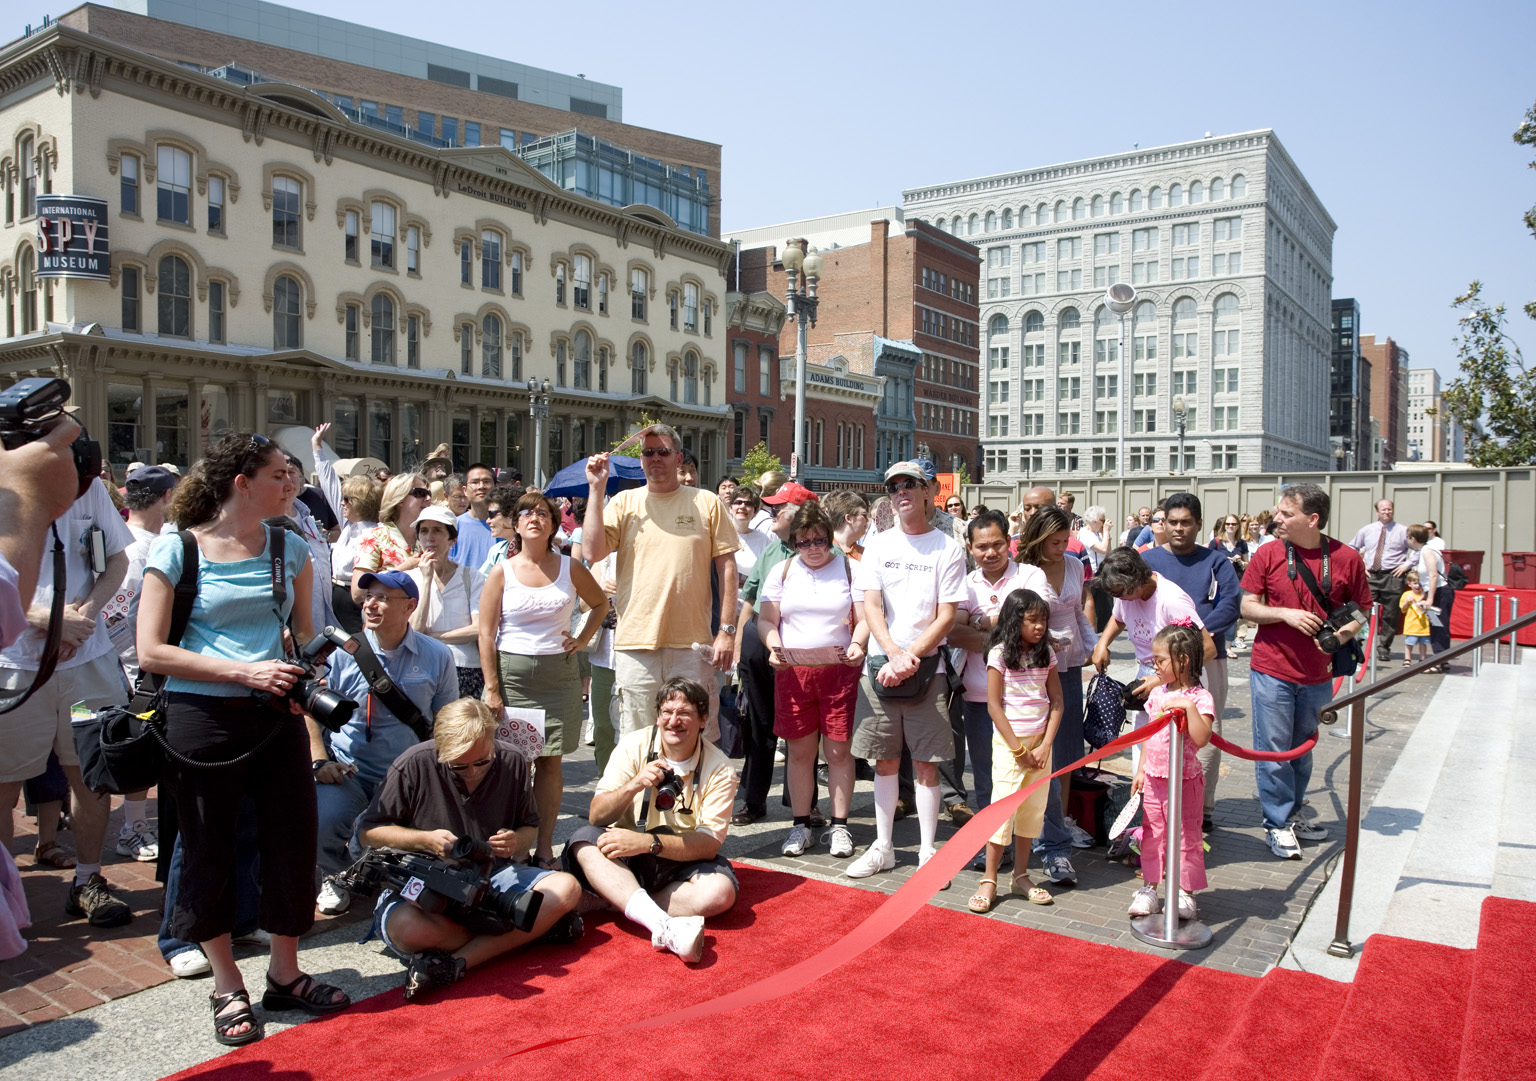 Adults and children stand outside the Donald W. Reynolds Center for American Art and Portraiture bui